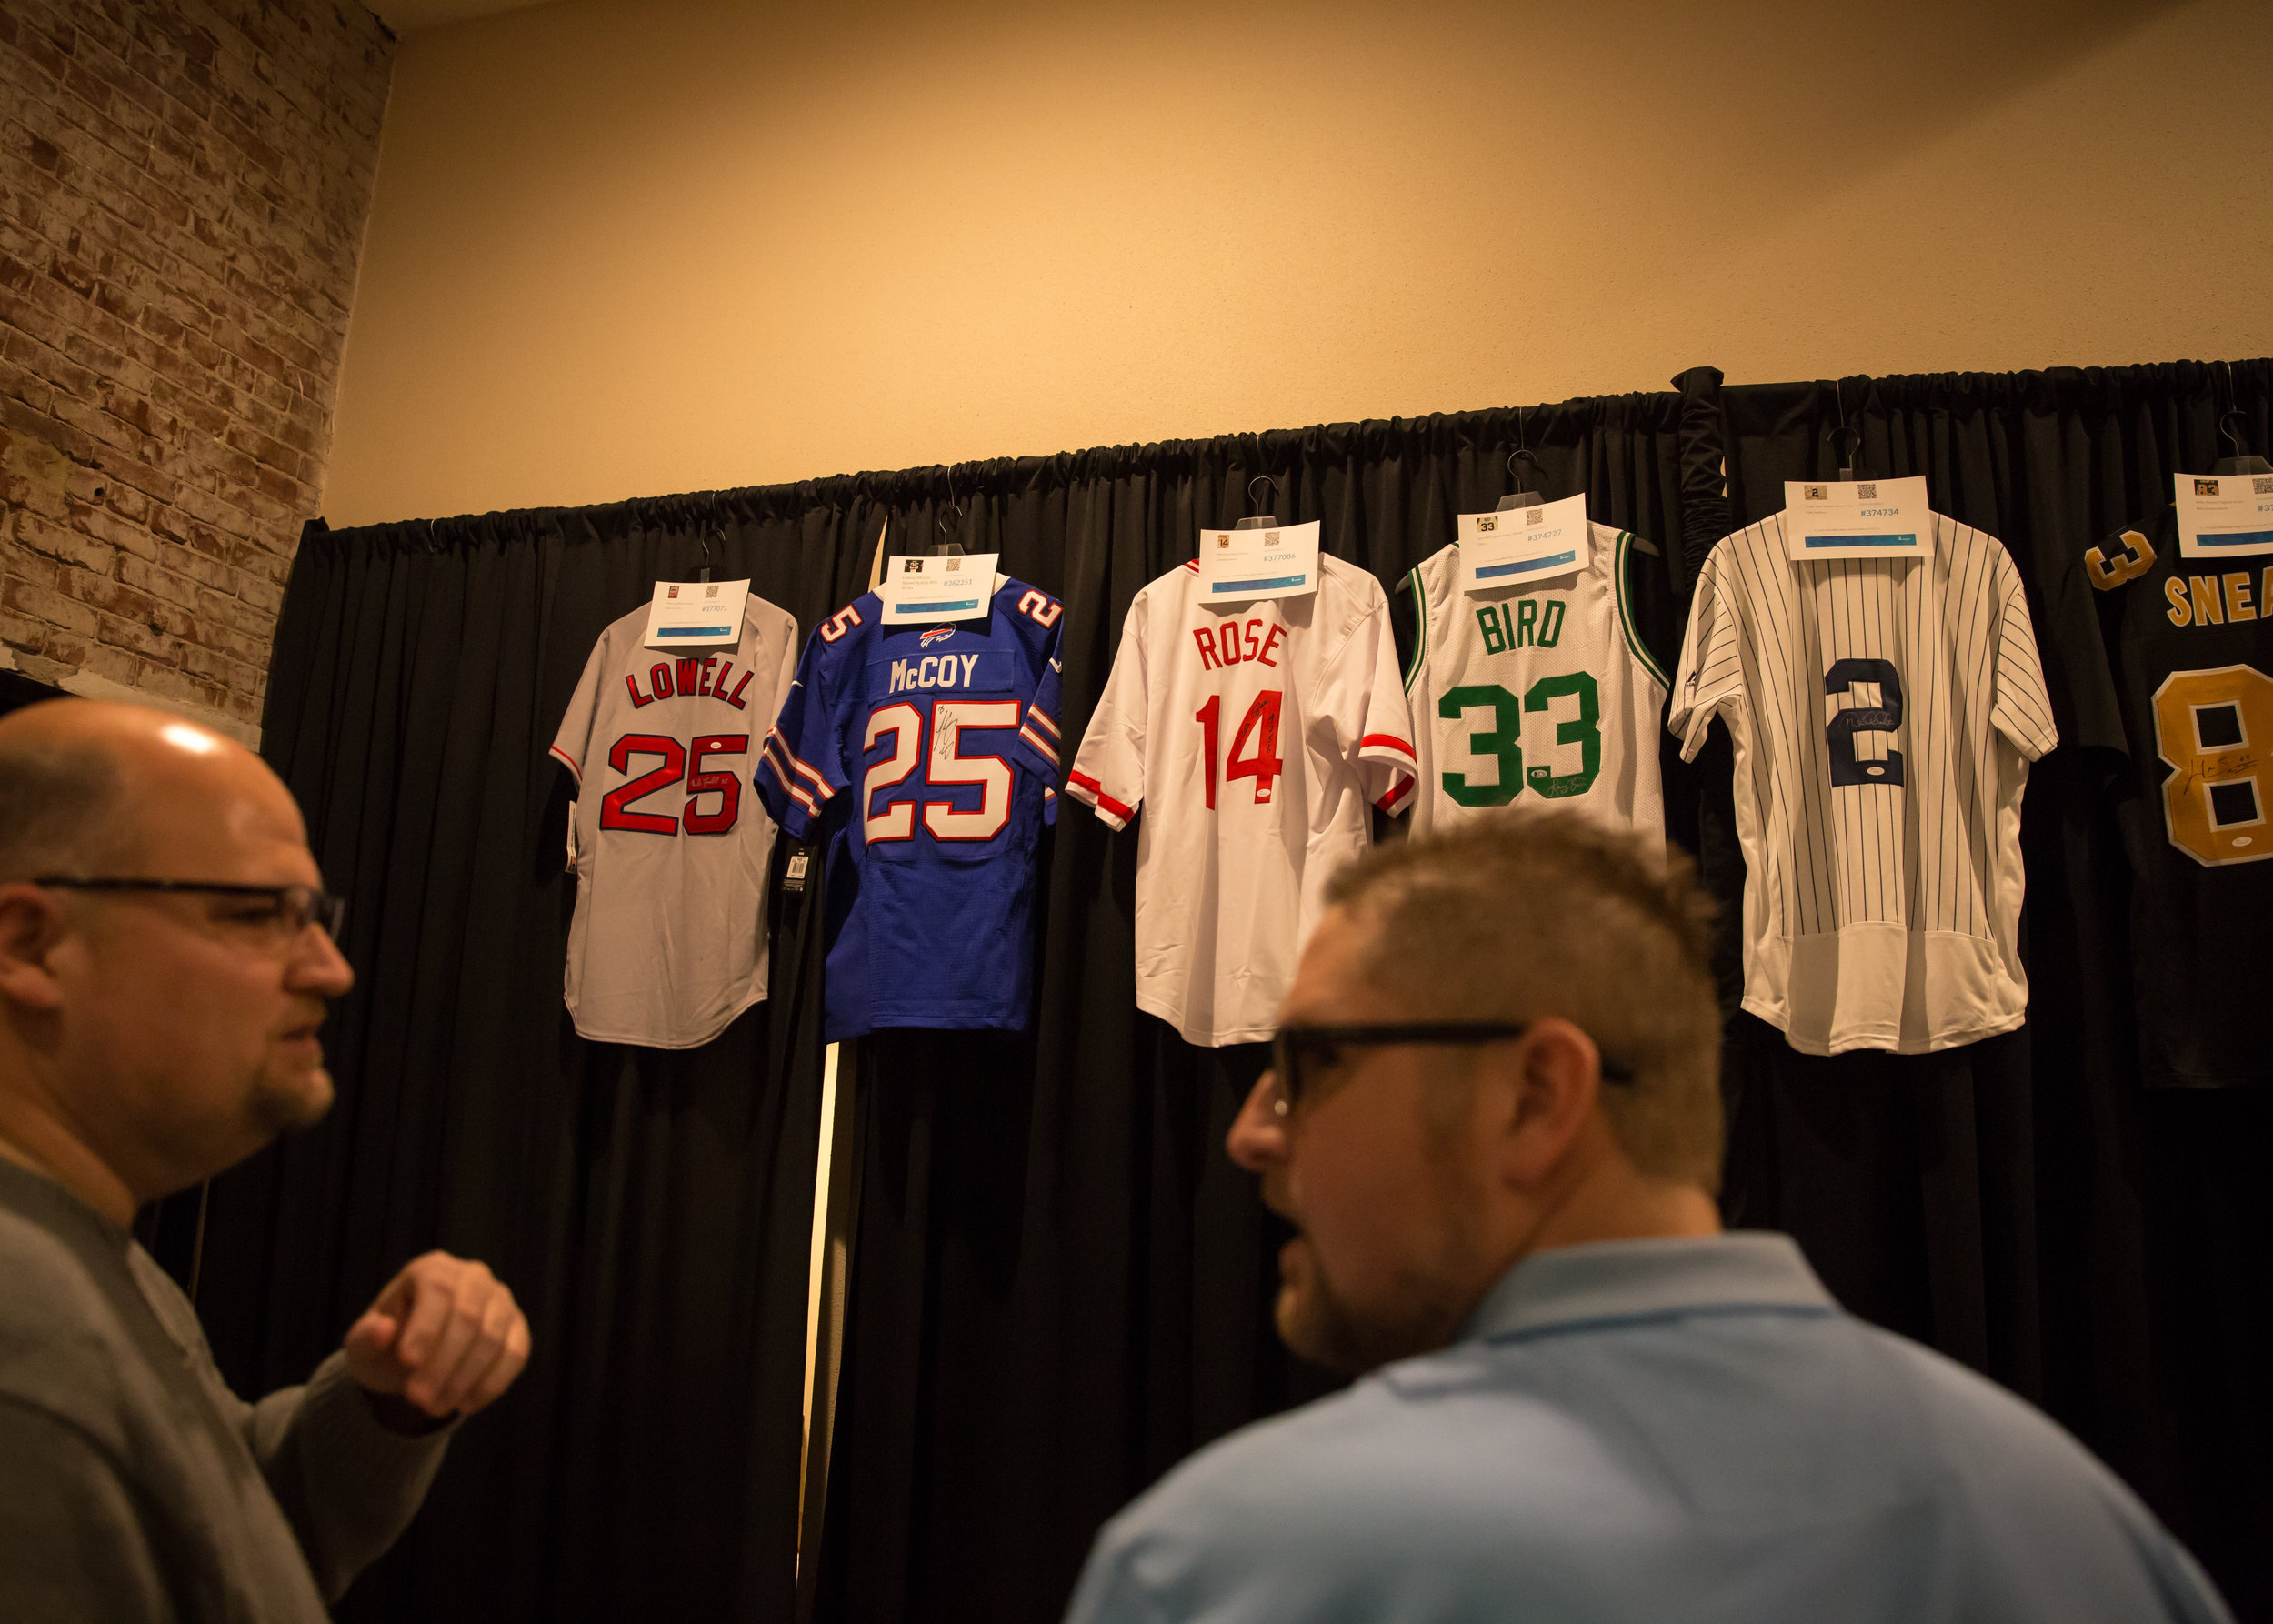 1-10-2019 Mattingly Charity Event-57.jpg